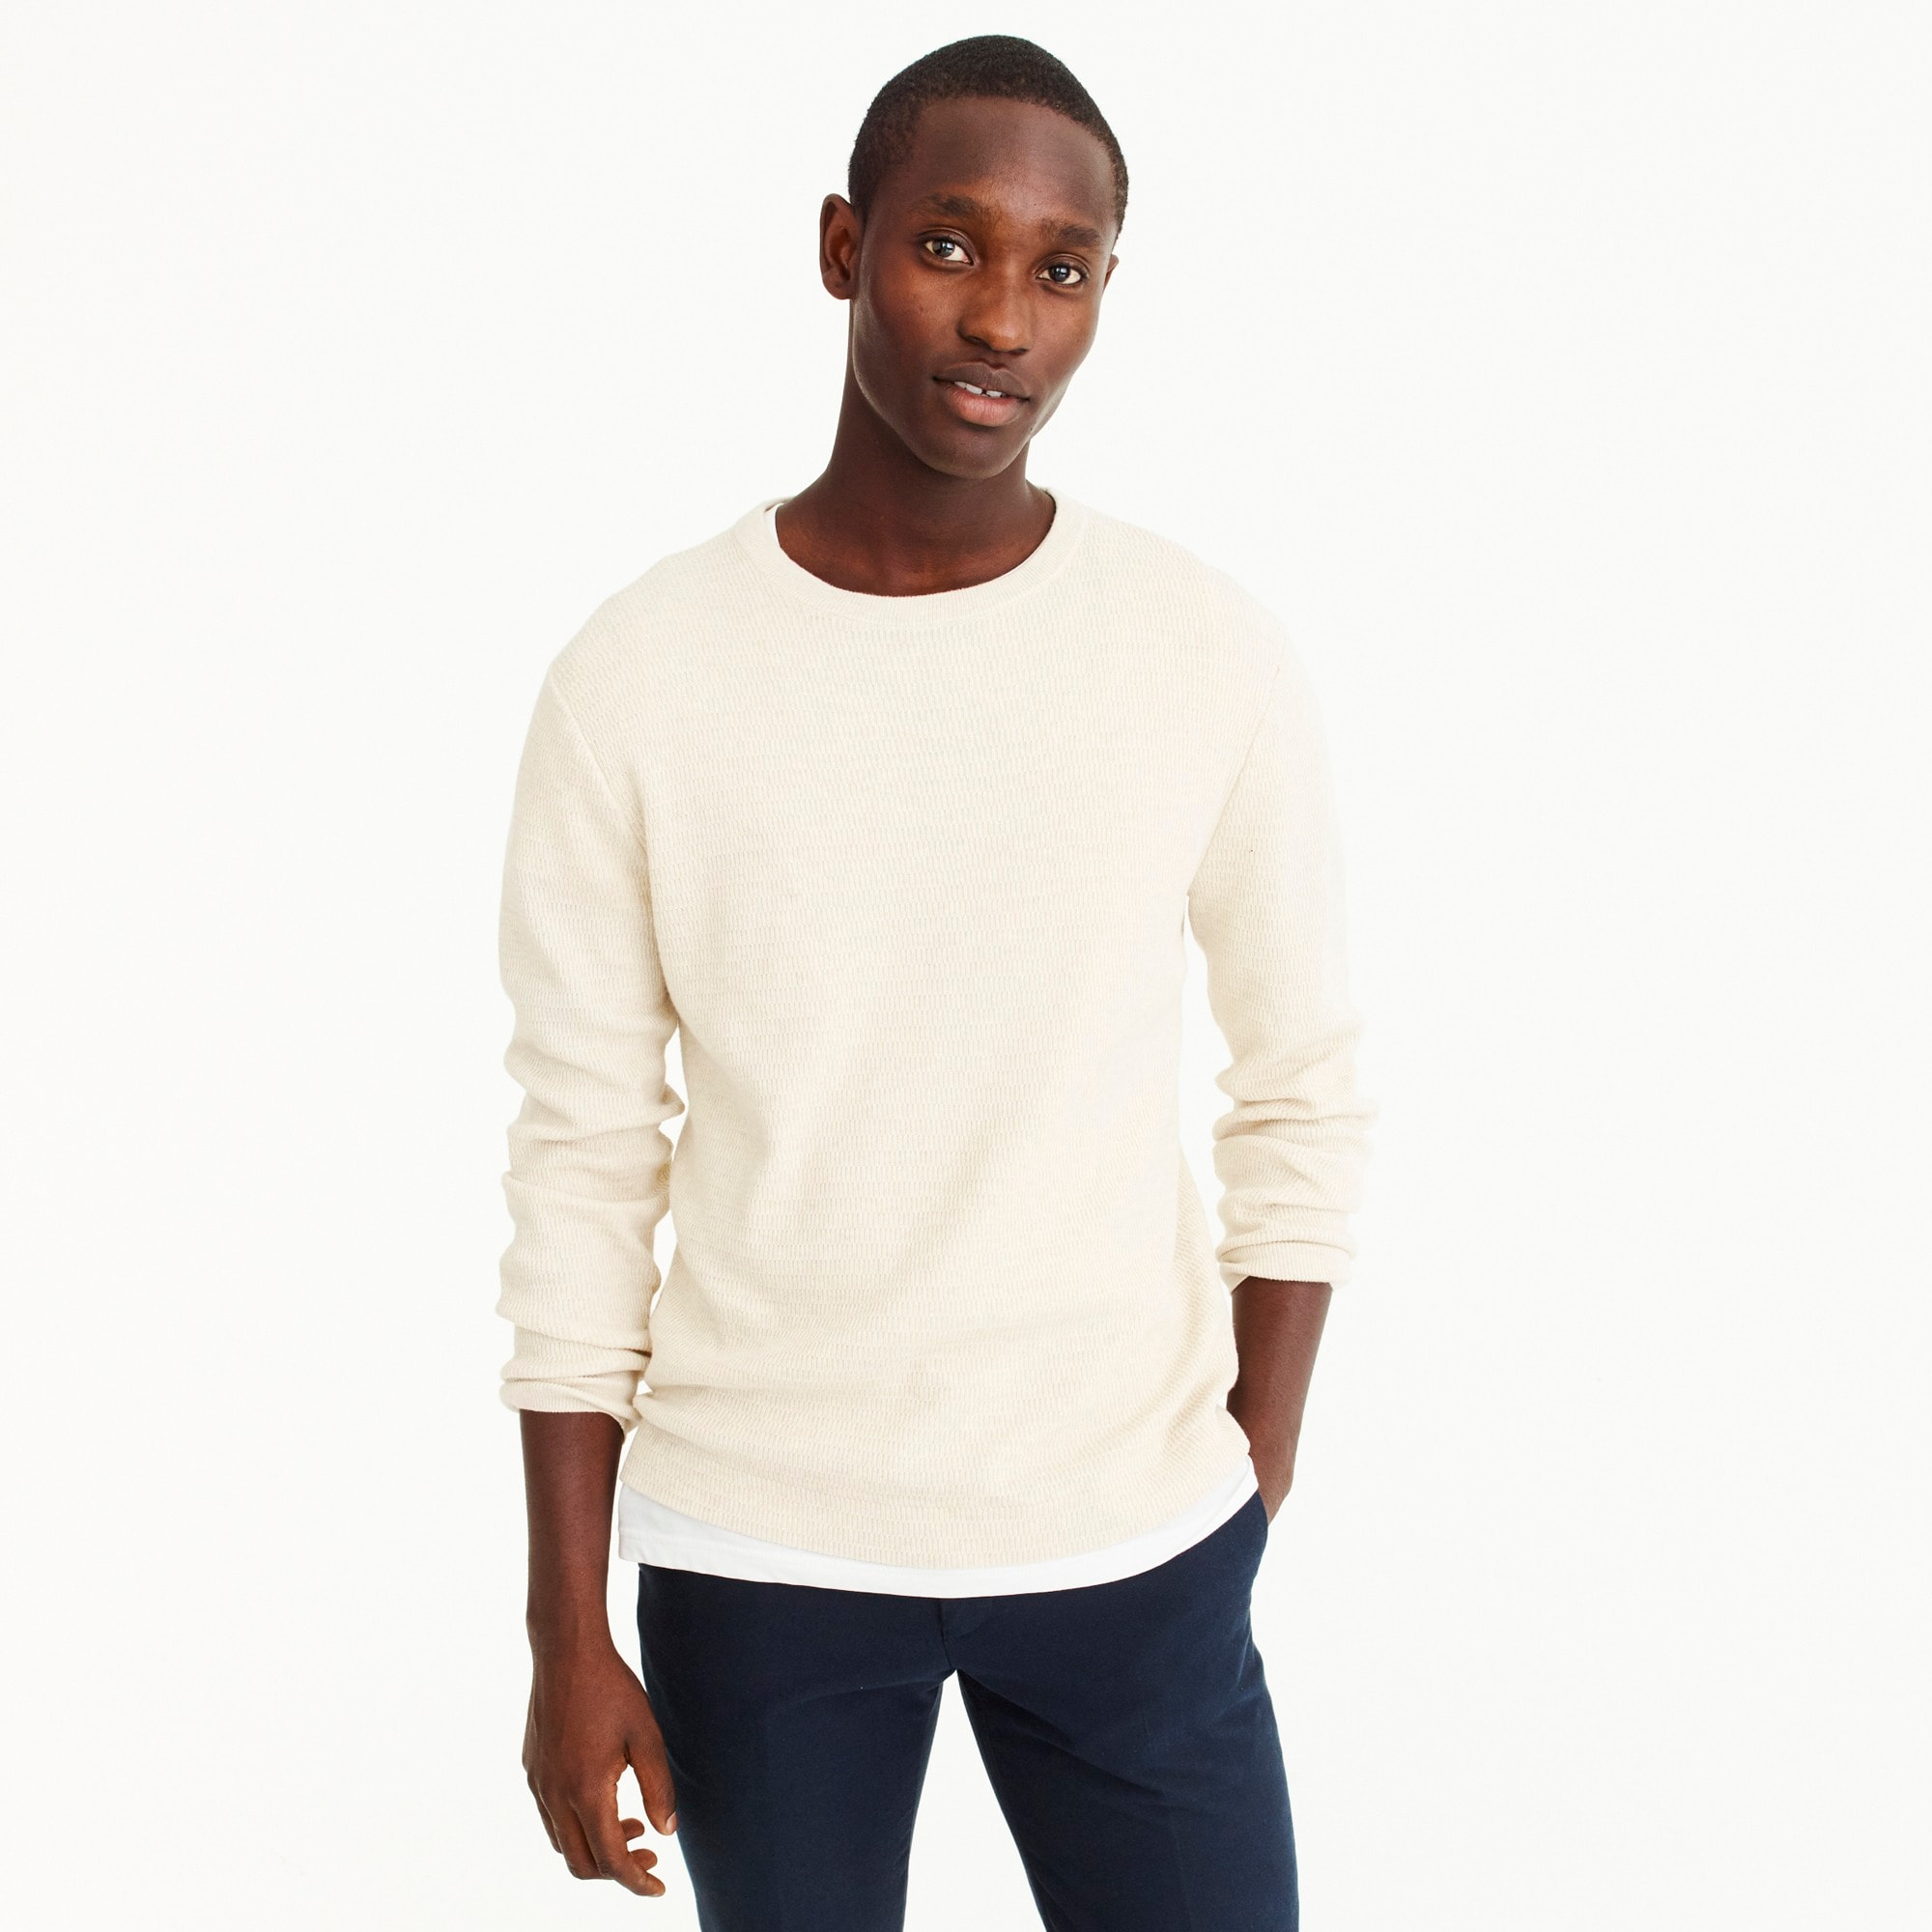 mens Cotton thermal knit crew neck sweater